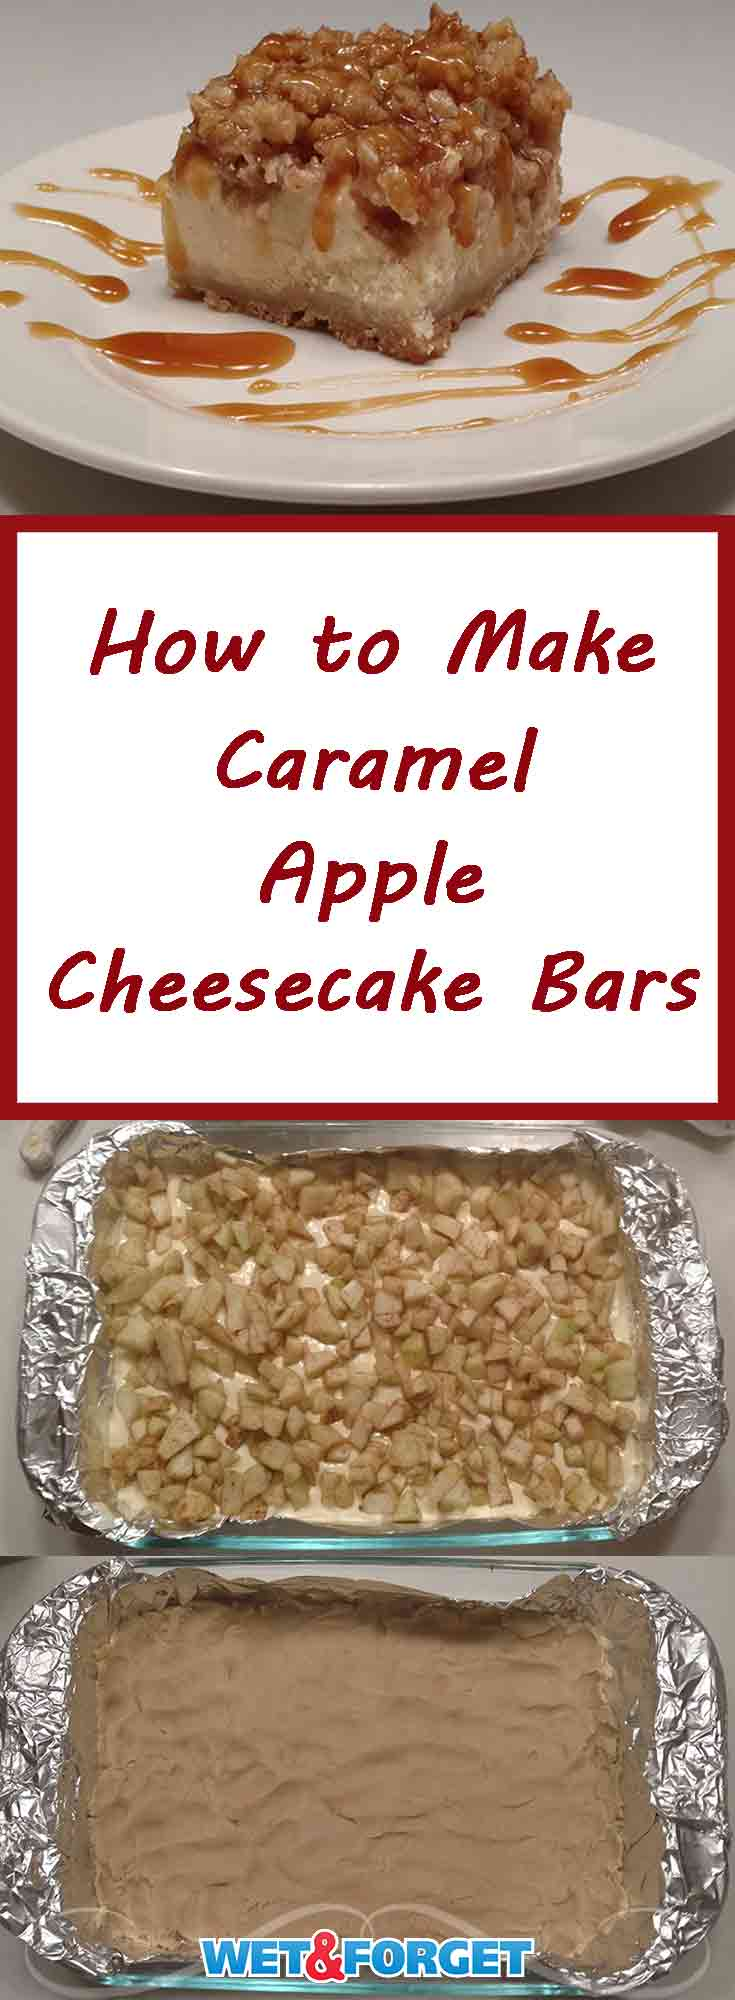 Need a new fall dessert recipe? These caramel apple cheesecake bars are the perfect dessert! The cinnamon and nutmeg sprinkled apples along with the caramel topping bring out the best flavors of fall.